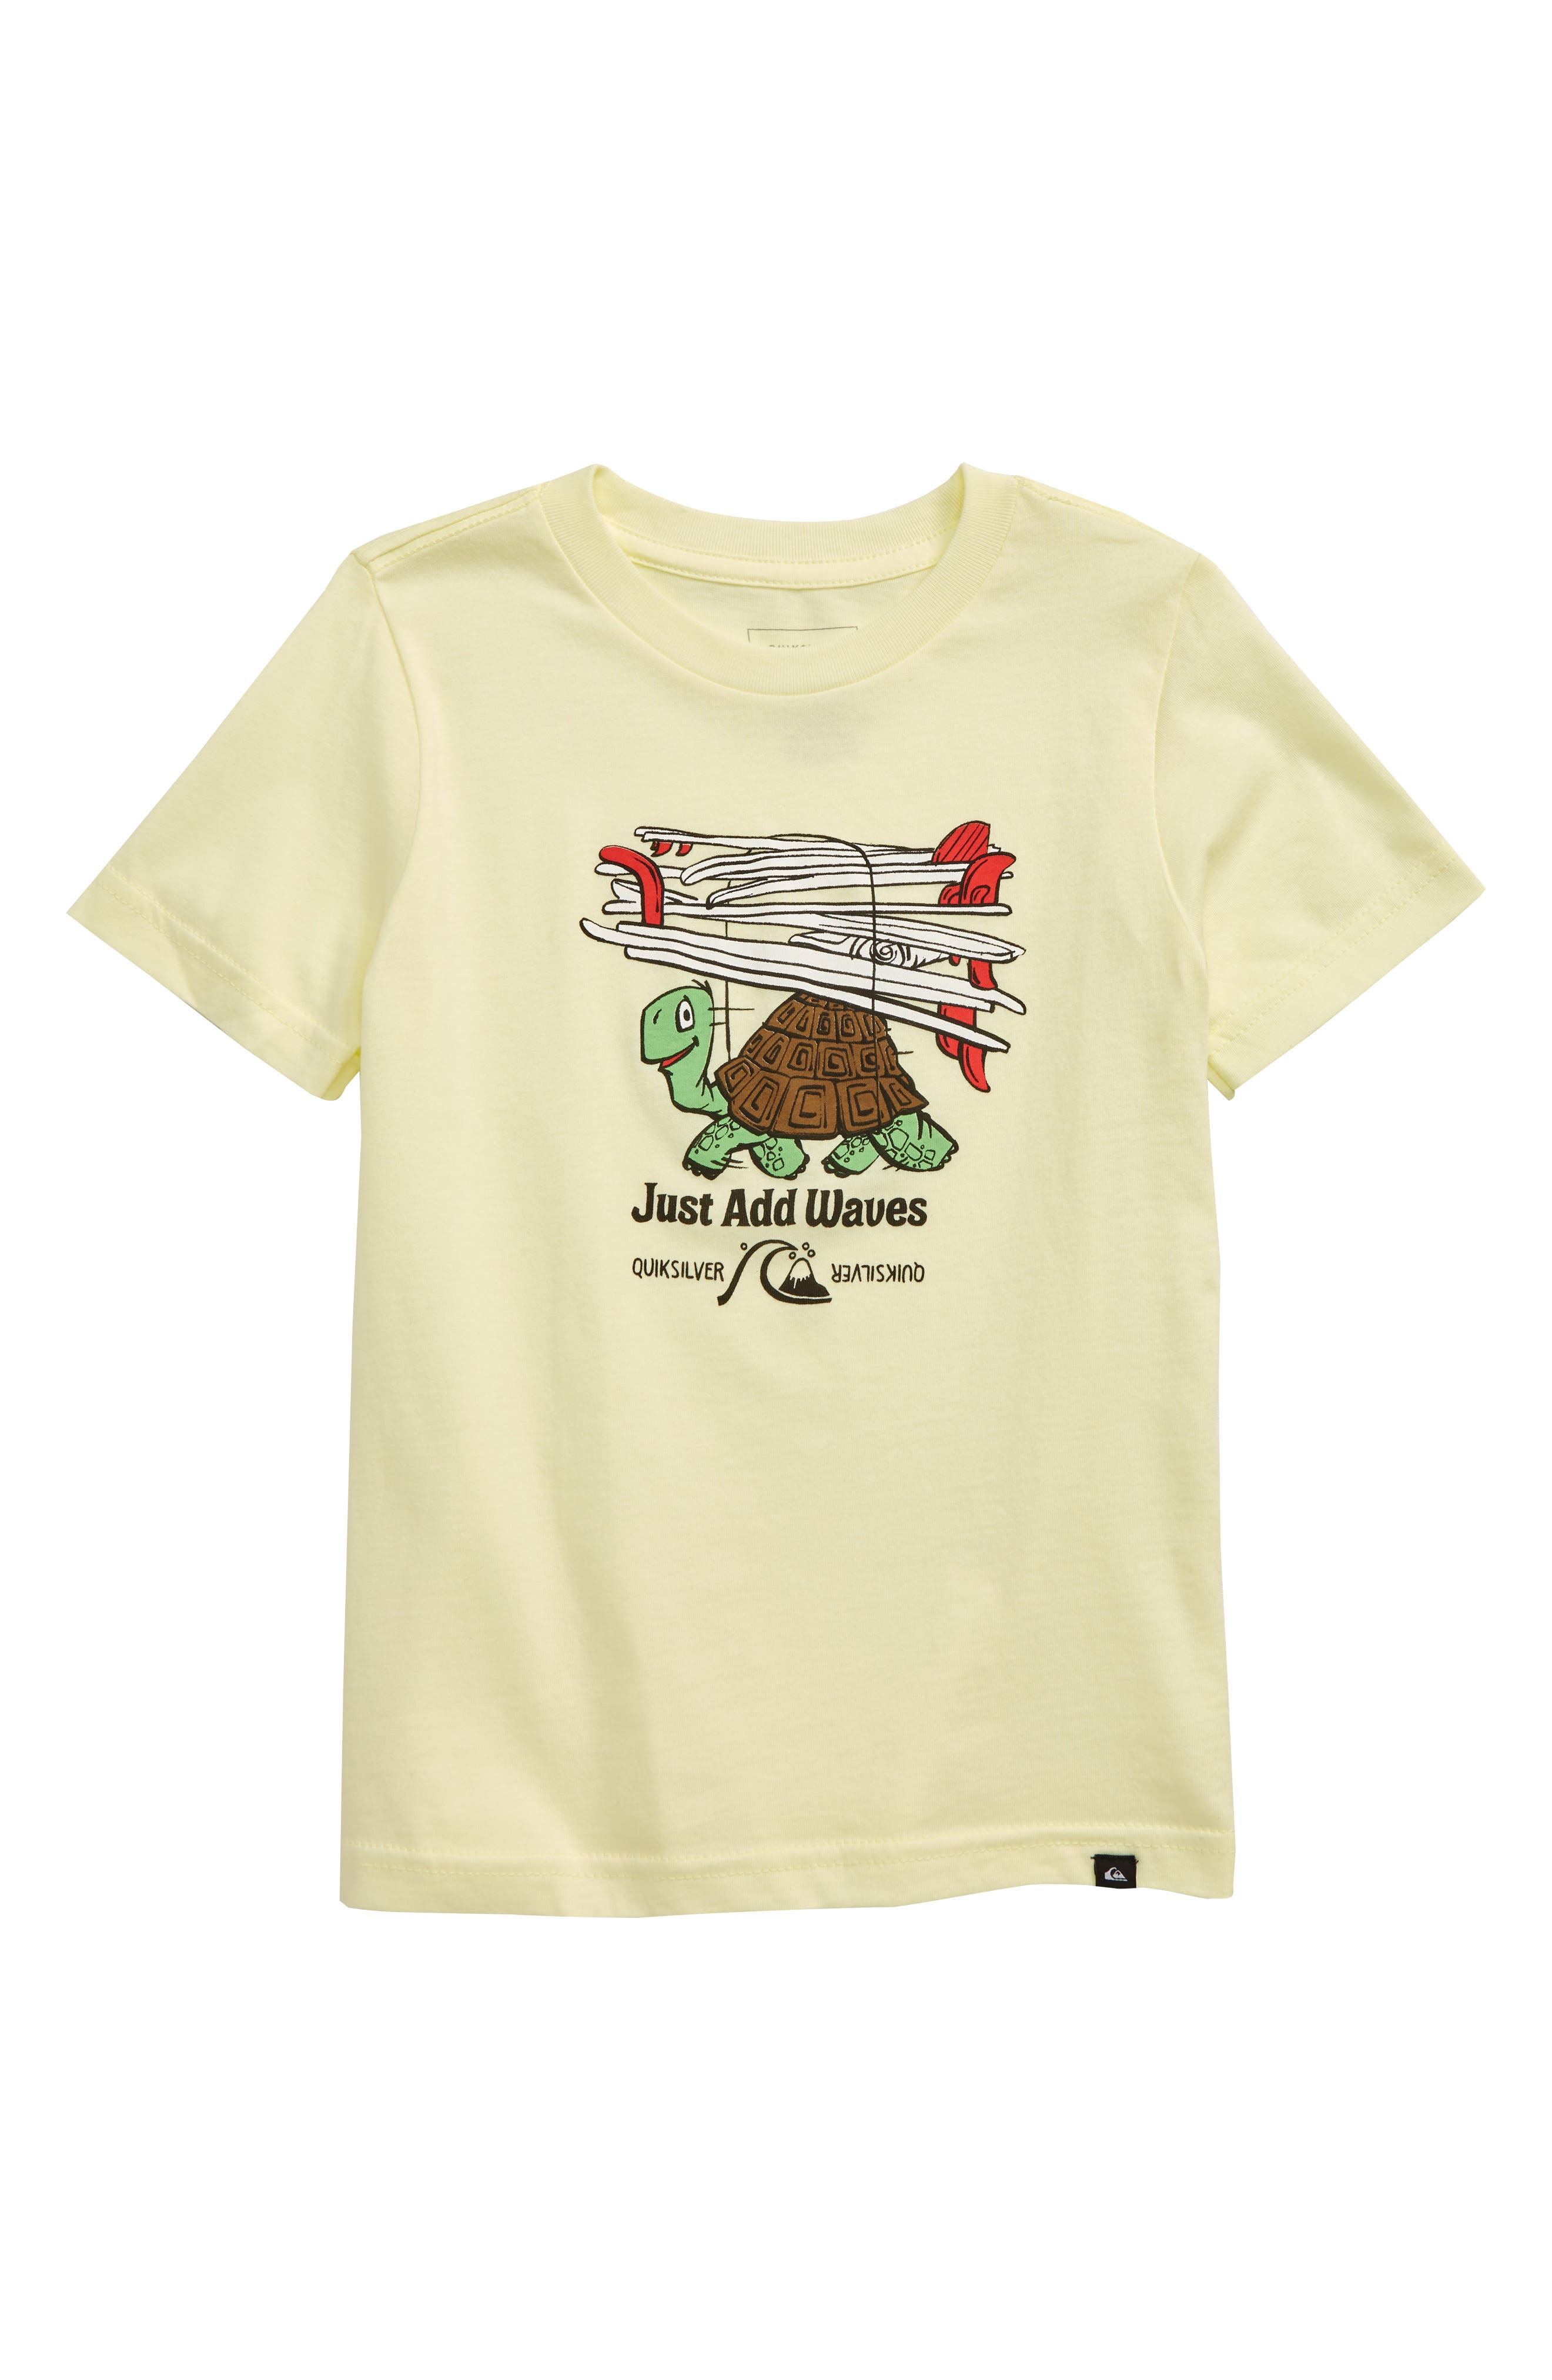 Toddler Boys Quiksilver Curious Adventures Graphic TShirt Size 2T  Yellow